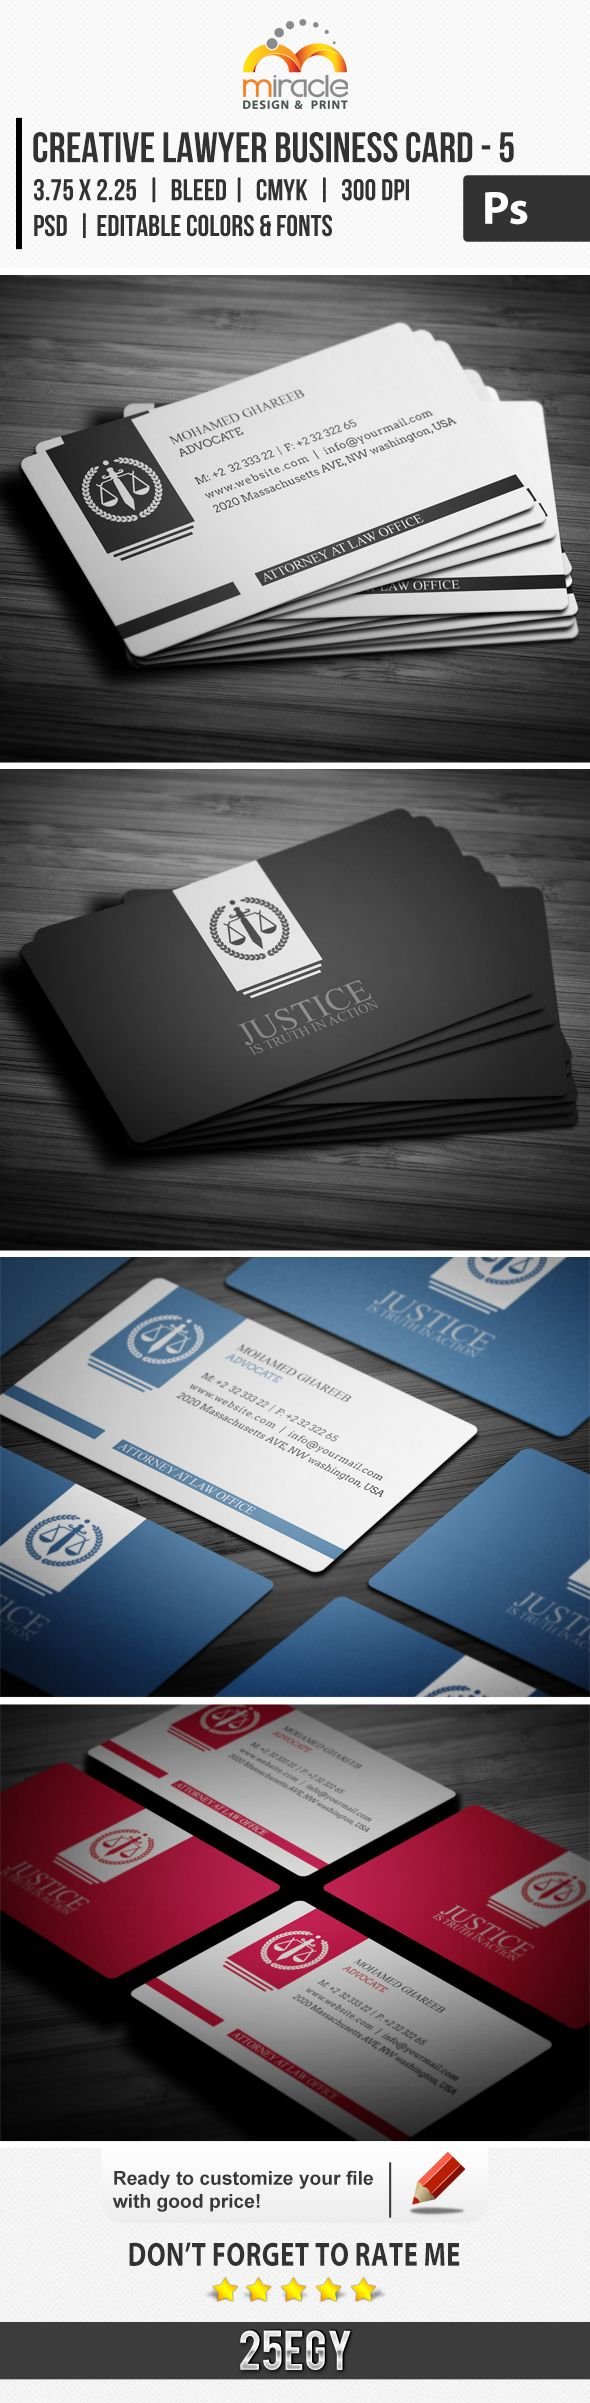 22 Best Customizable Attorney And Professional Business Cards Images